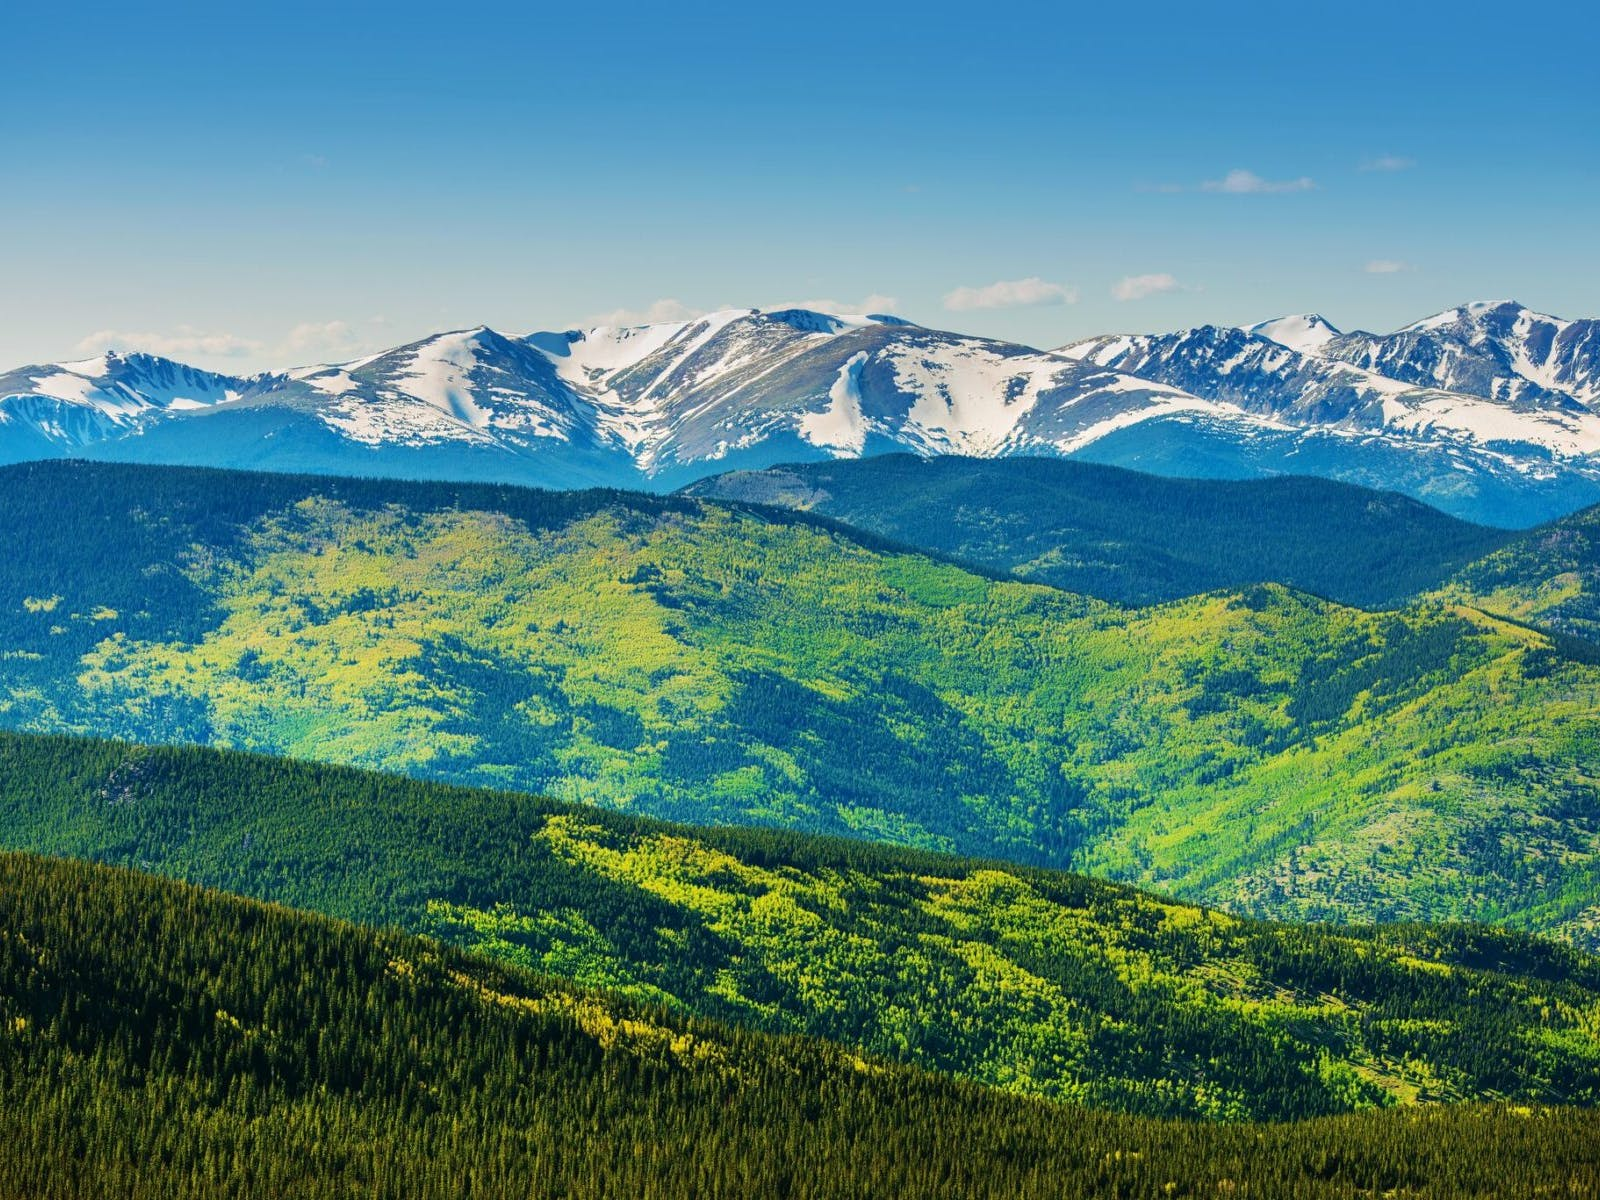 a view of the green forest near breckenridge with the snowy mountains on the horizon